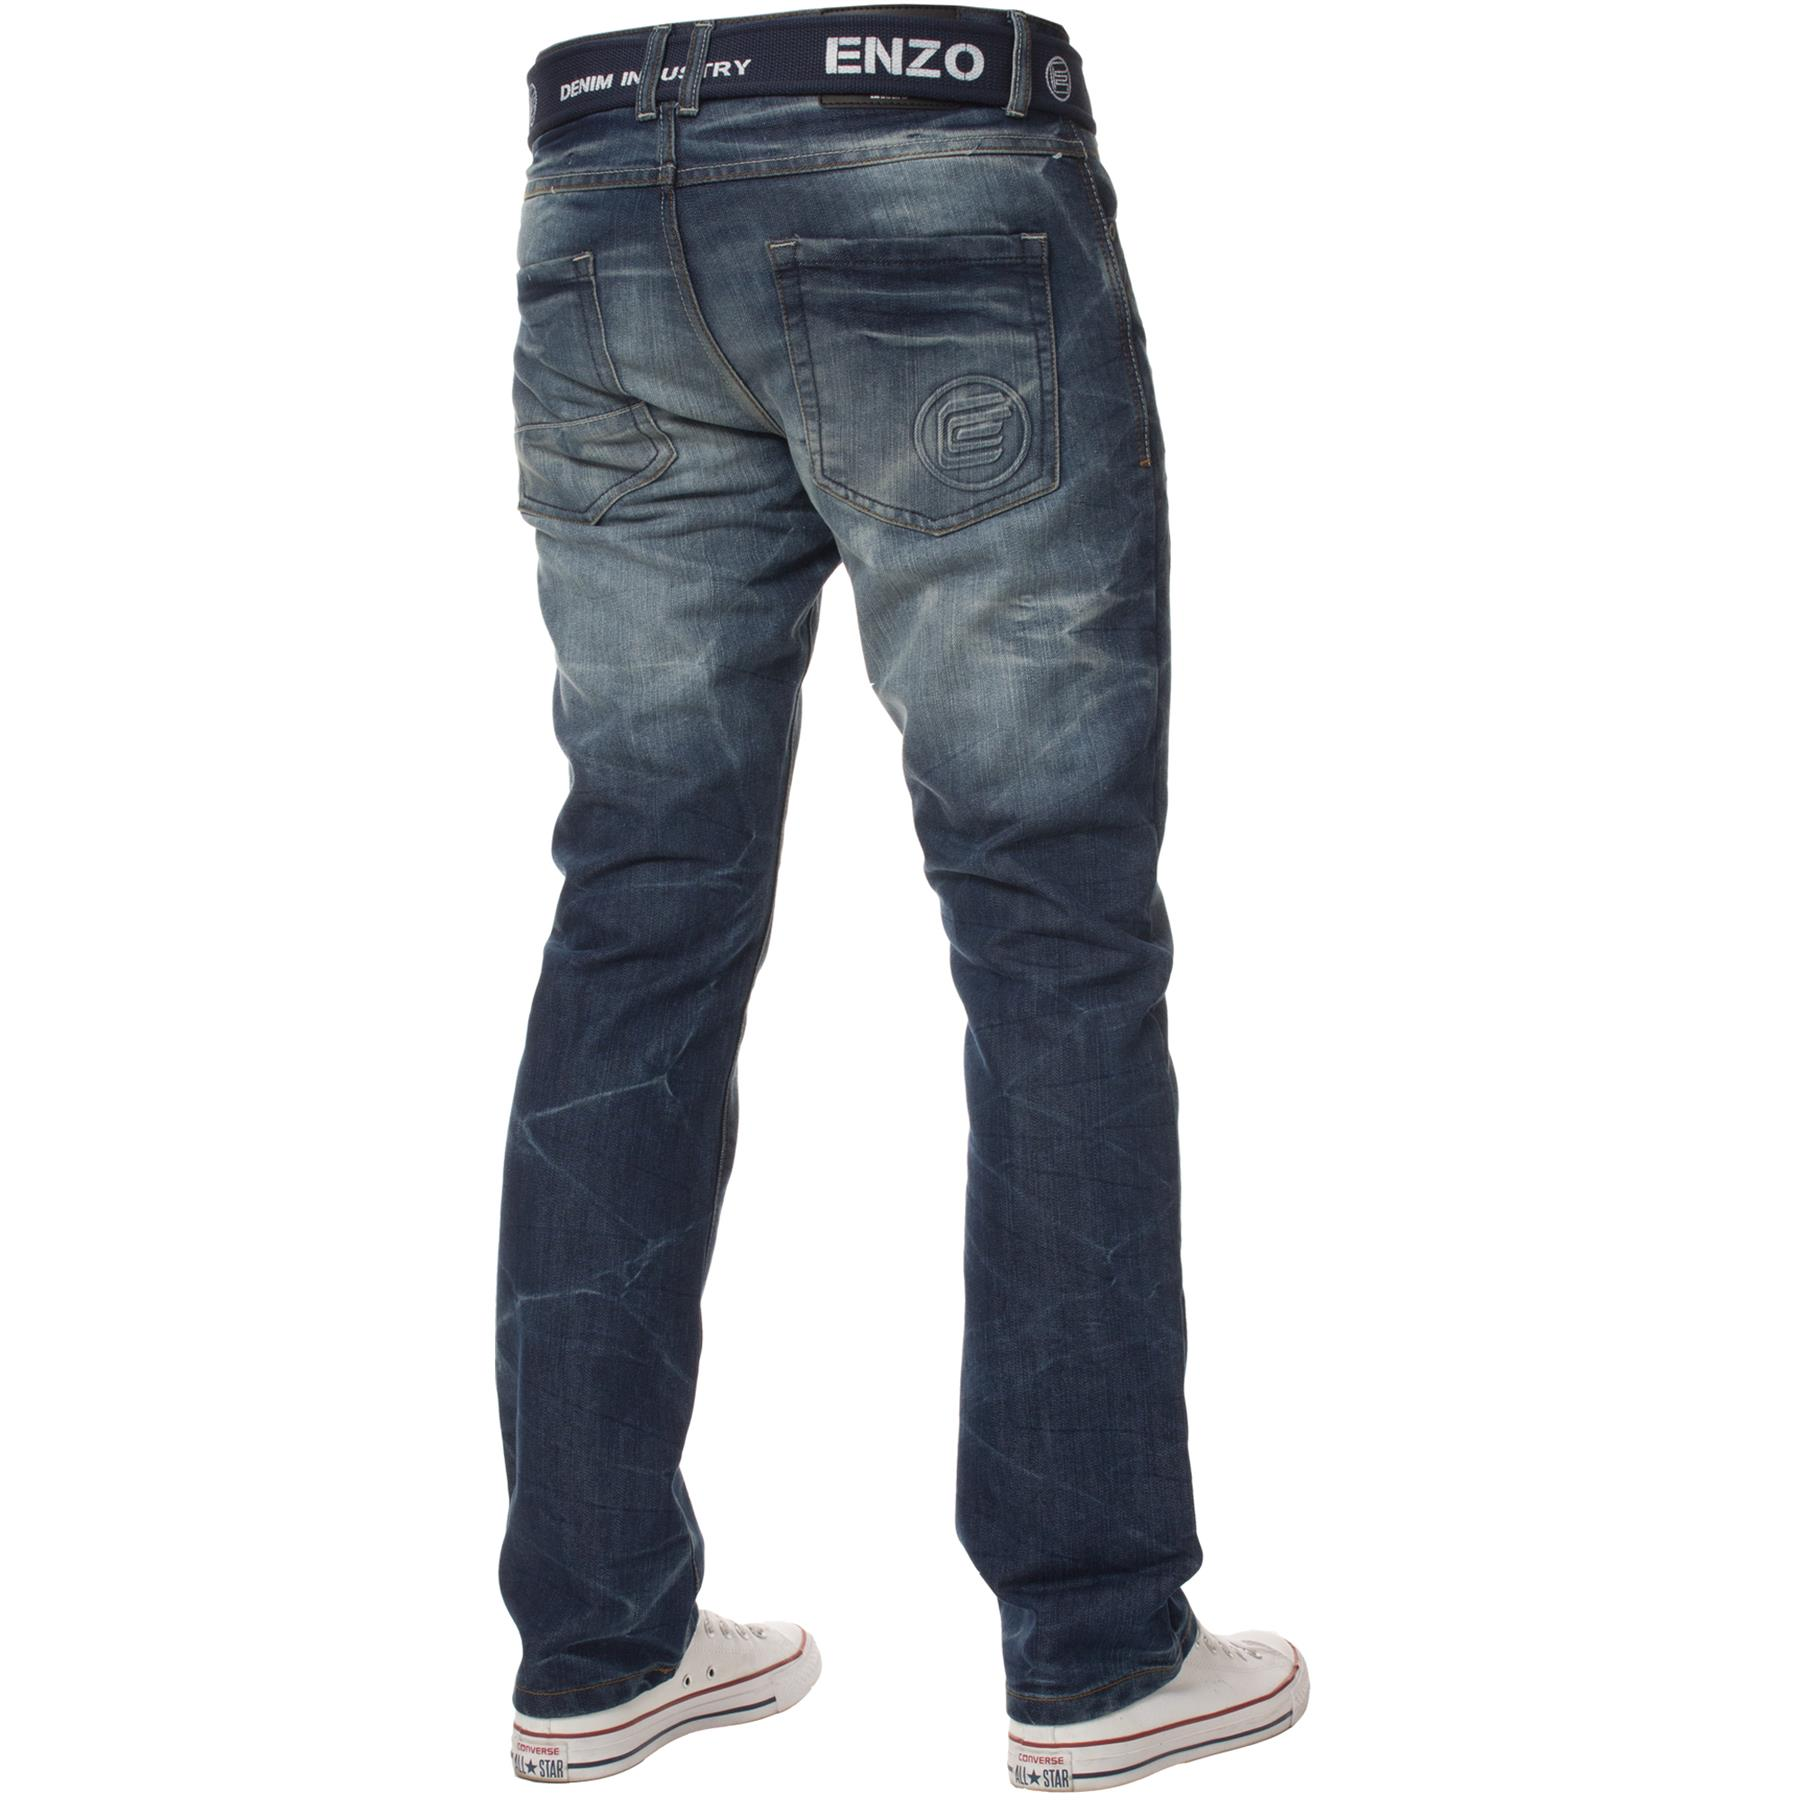 Enzo-Mens-Jeans-Big-Tall-Leg-King-Size-Denim-Pants-Chino-Trousers-Waist-44-034-60-034 miniature 70